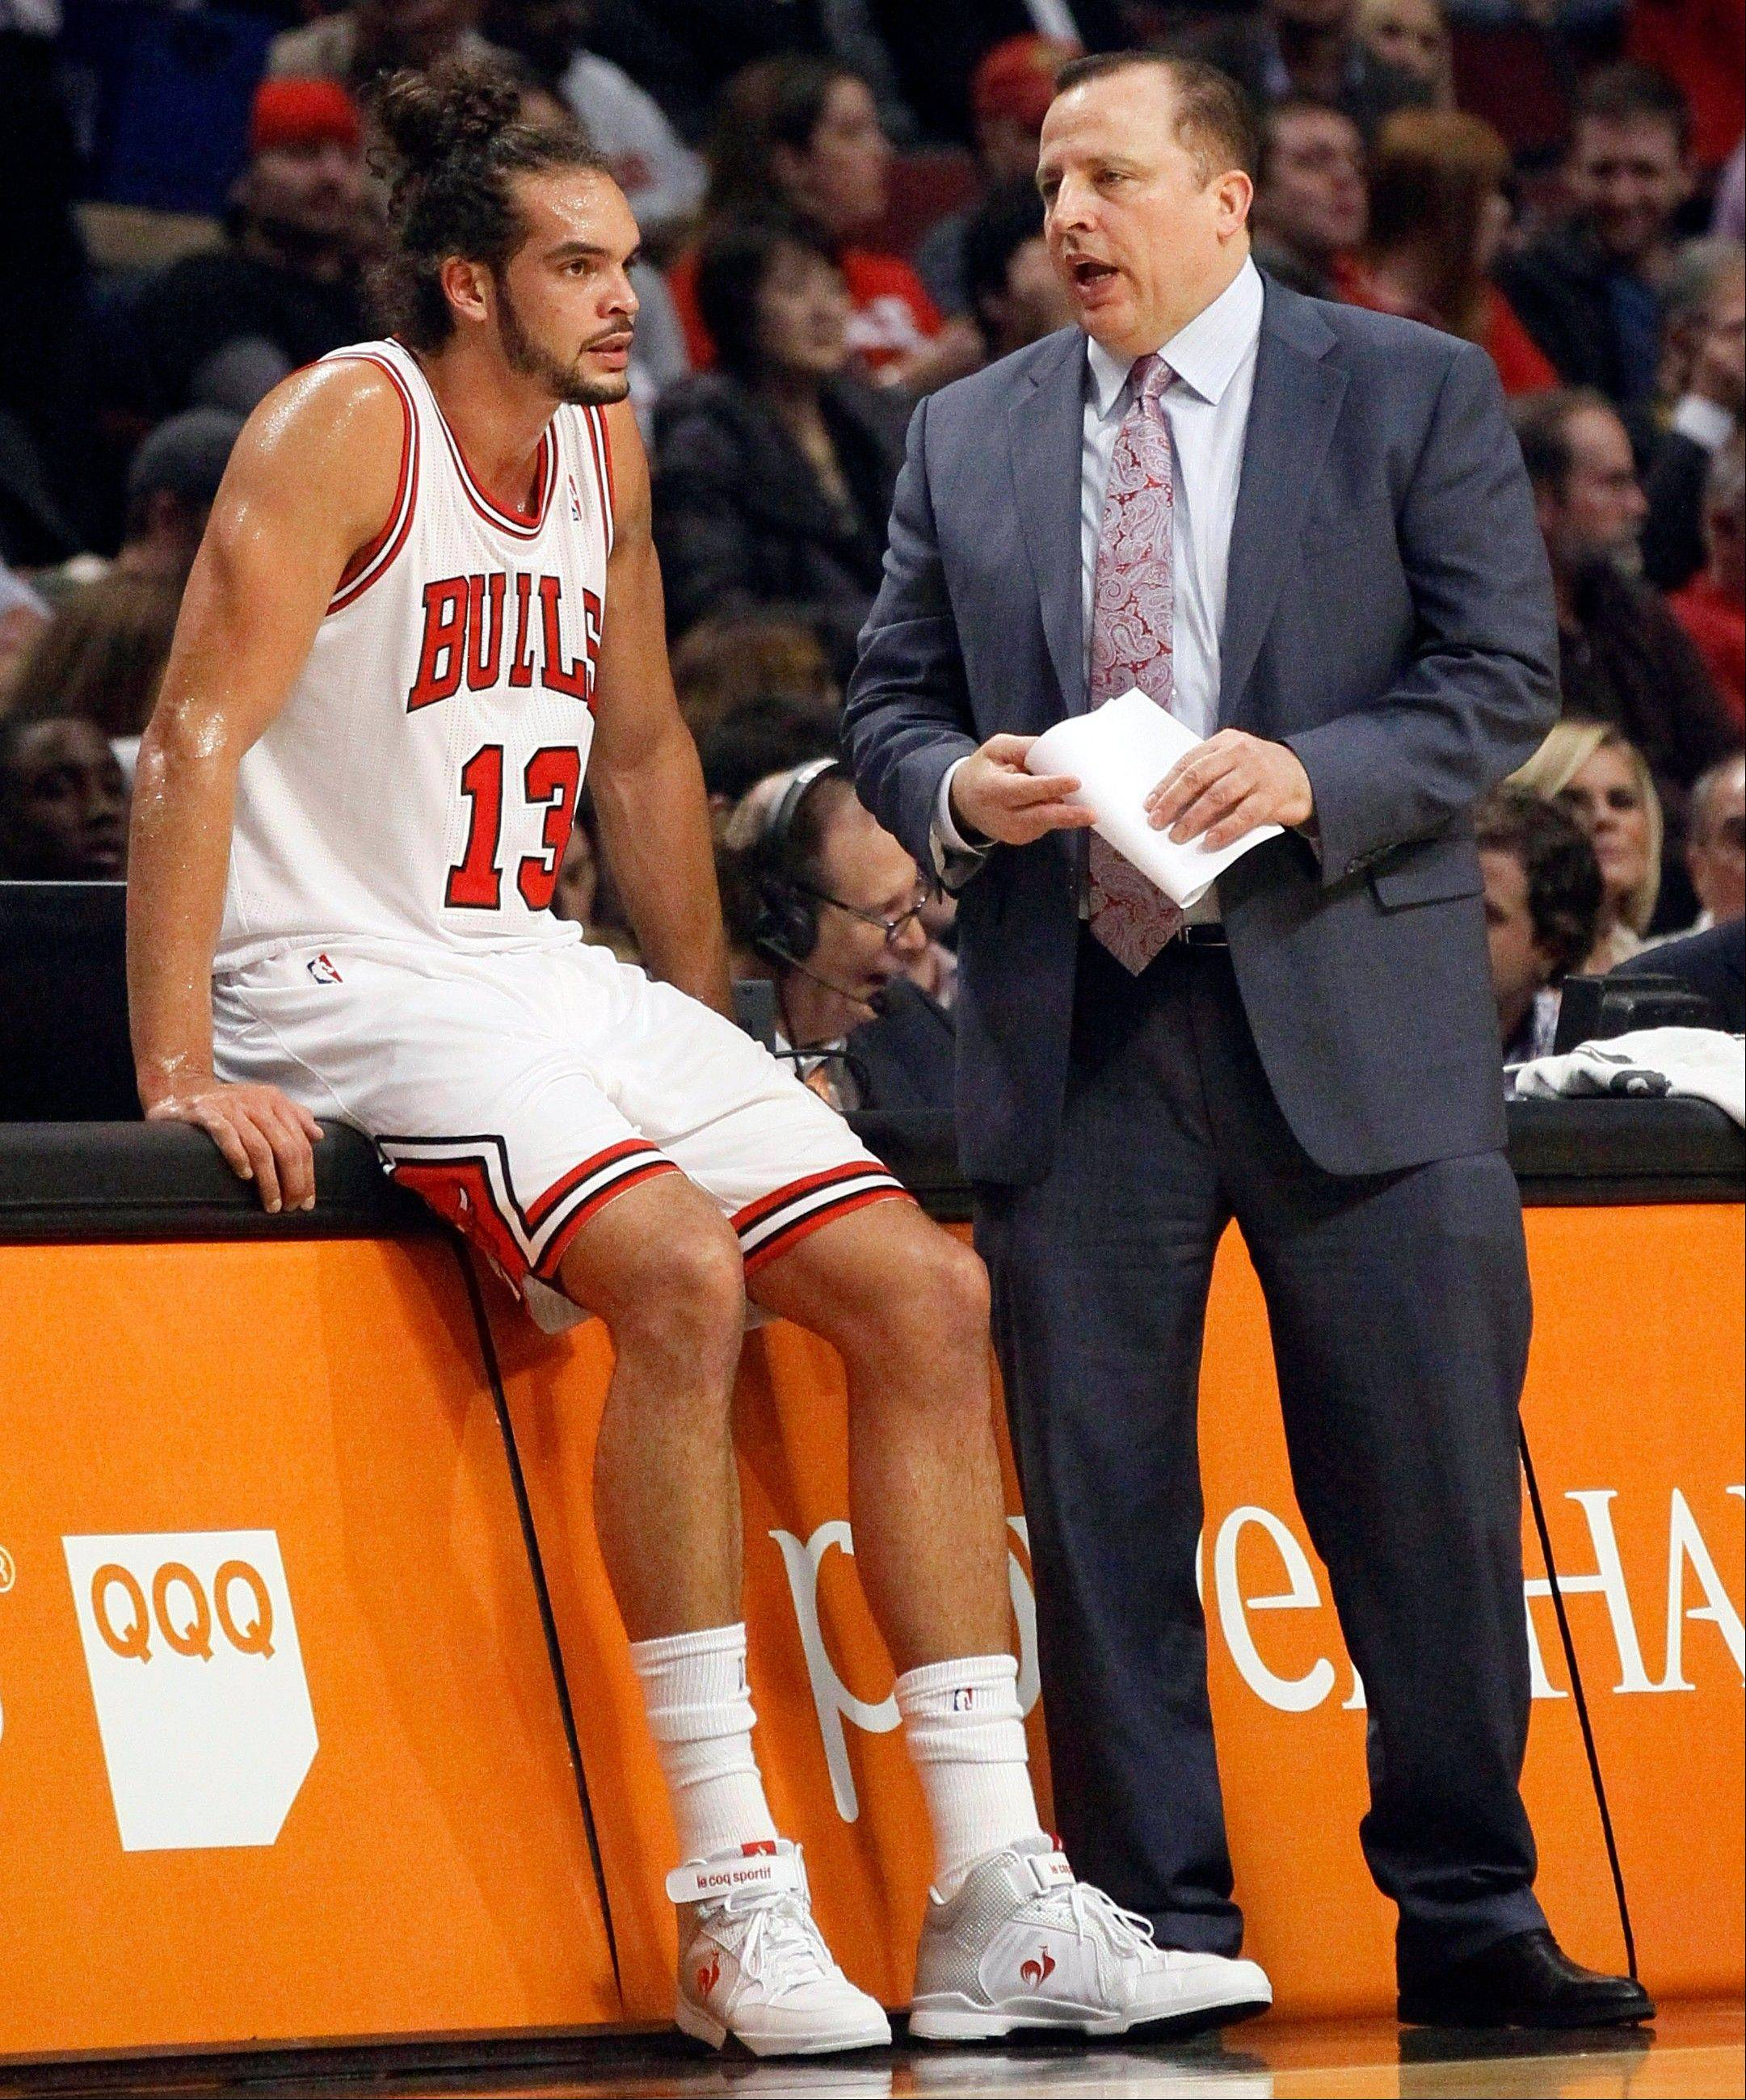 Bulls head coach Tom Thibodeau likes the energy that a healthy and stronger Joakim Noah gives the Bulls this season.